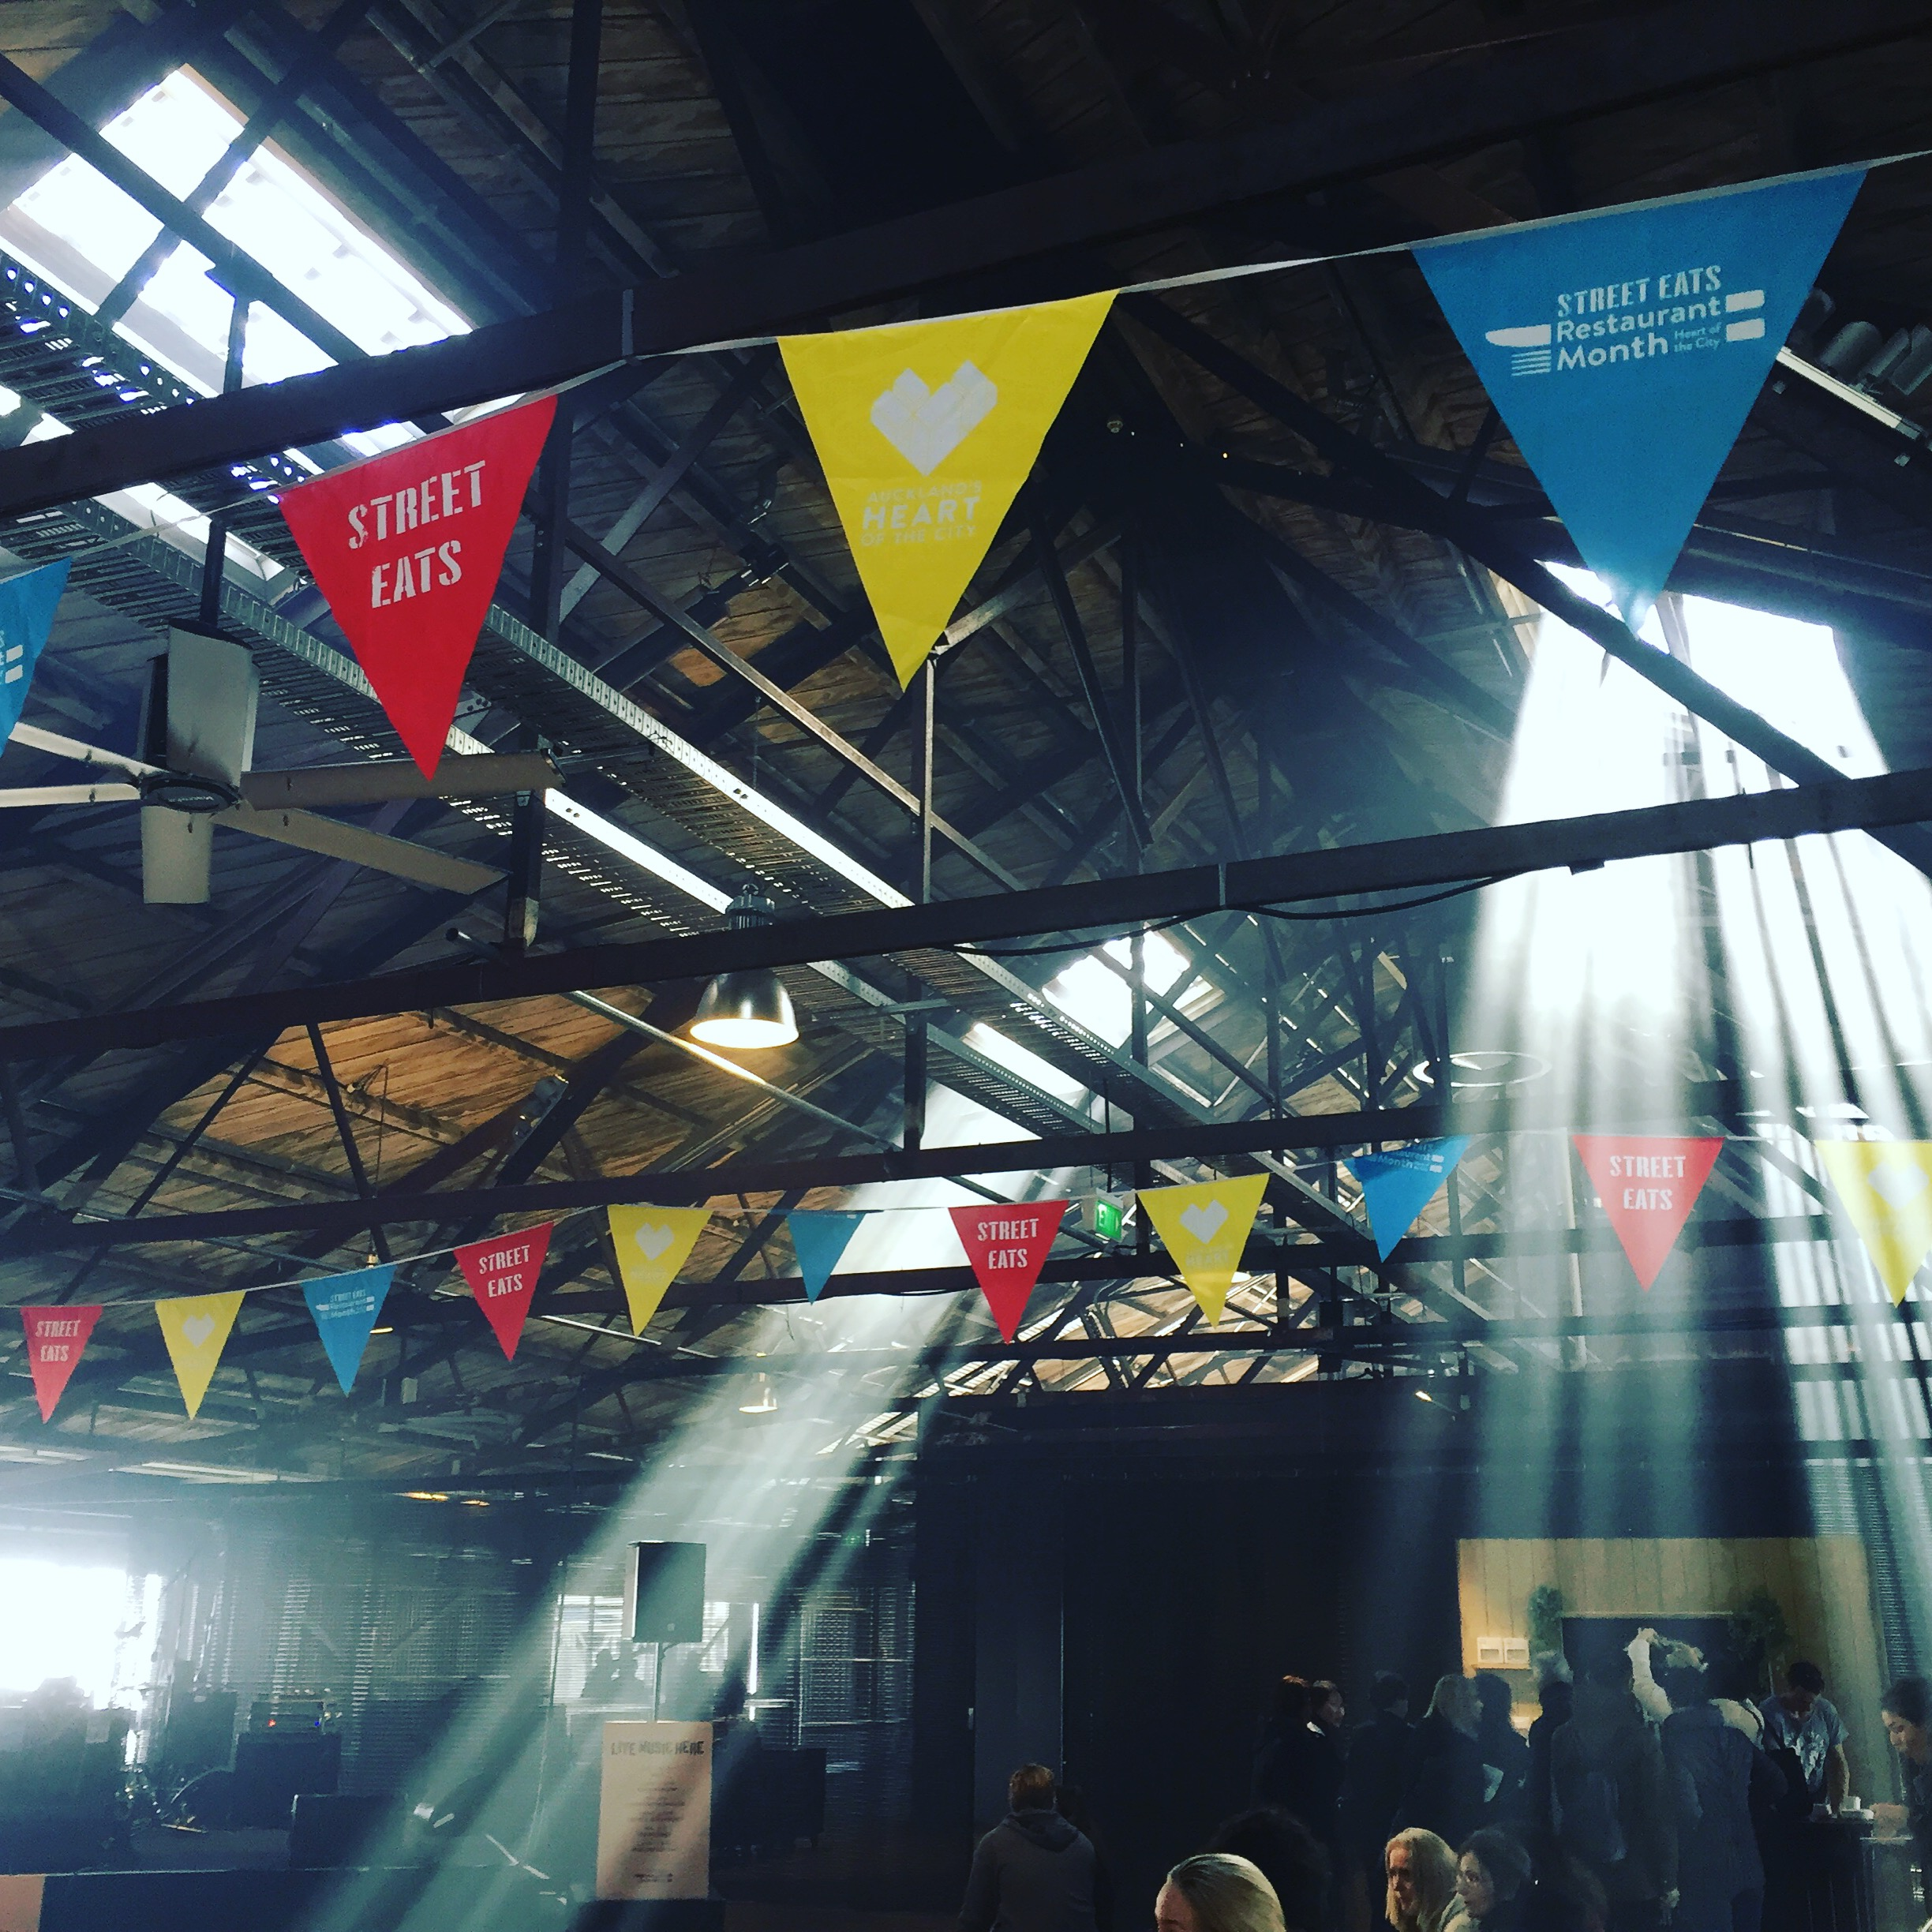 Street Eats at Shed 10, Queens Wharf